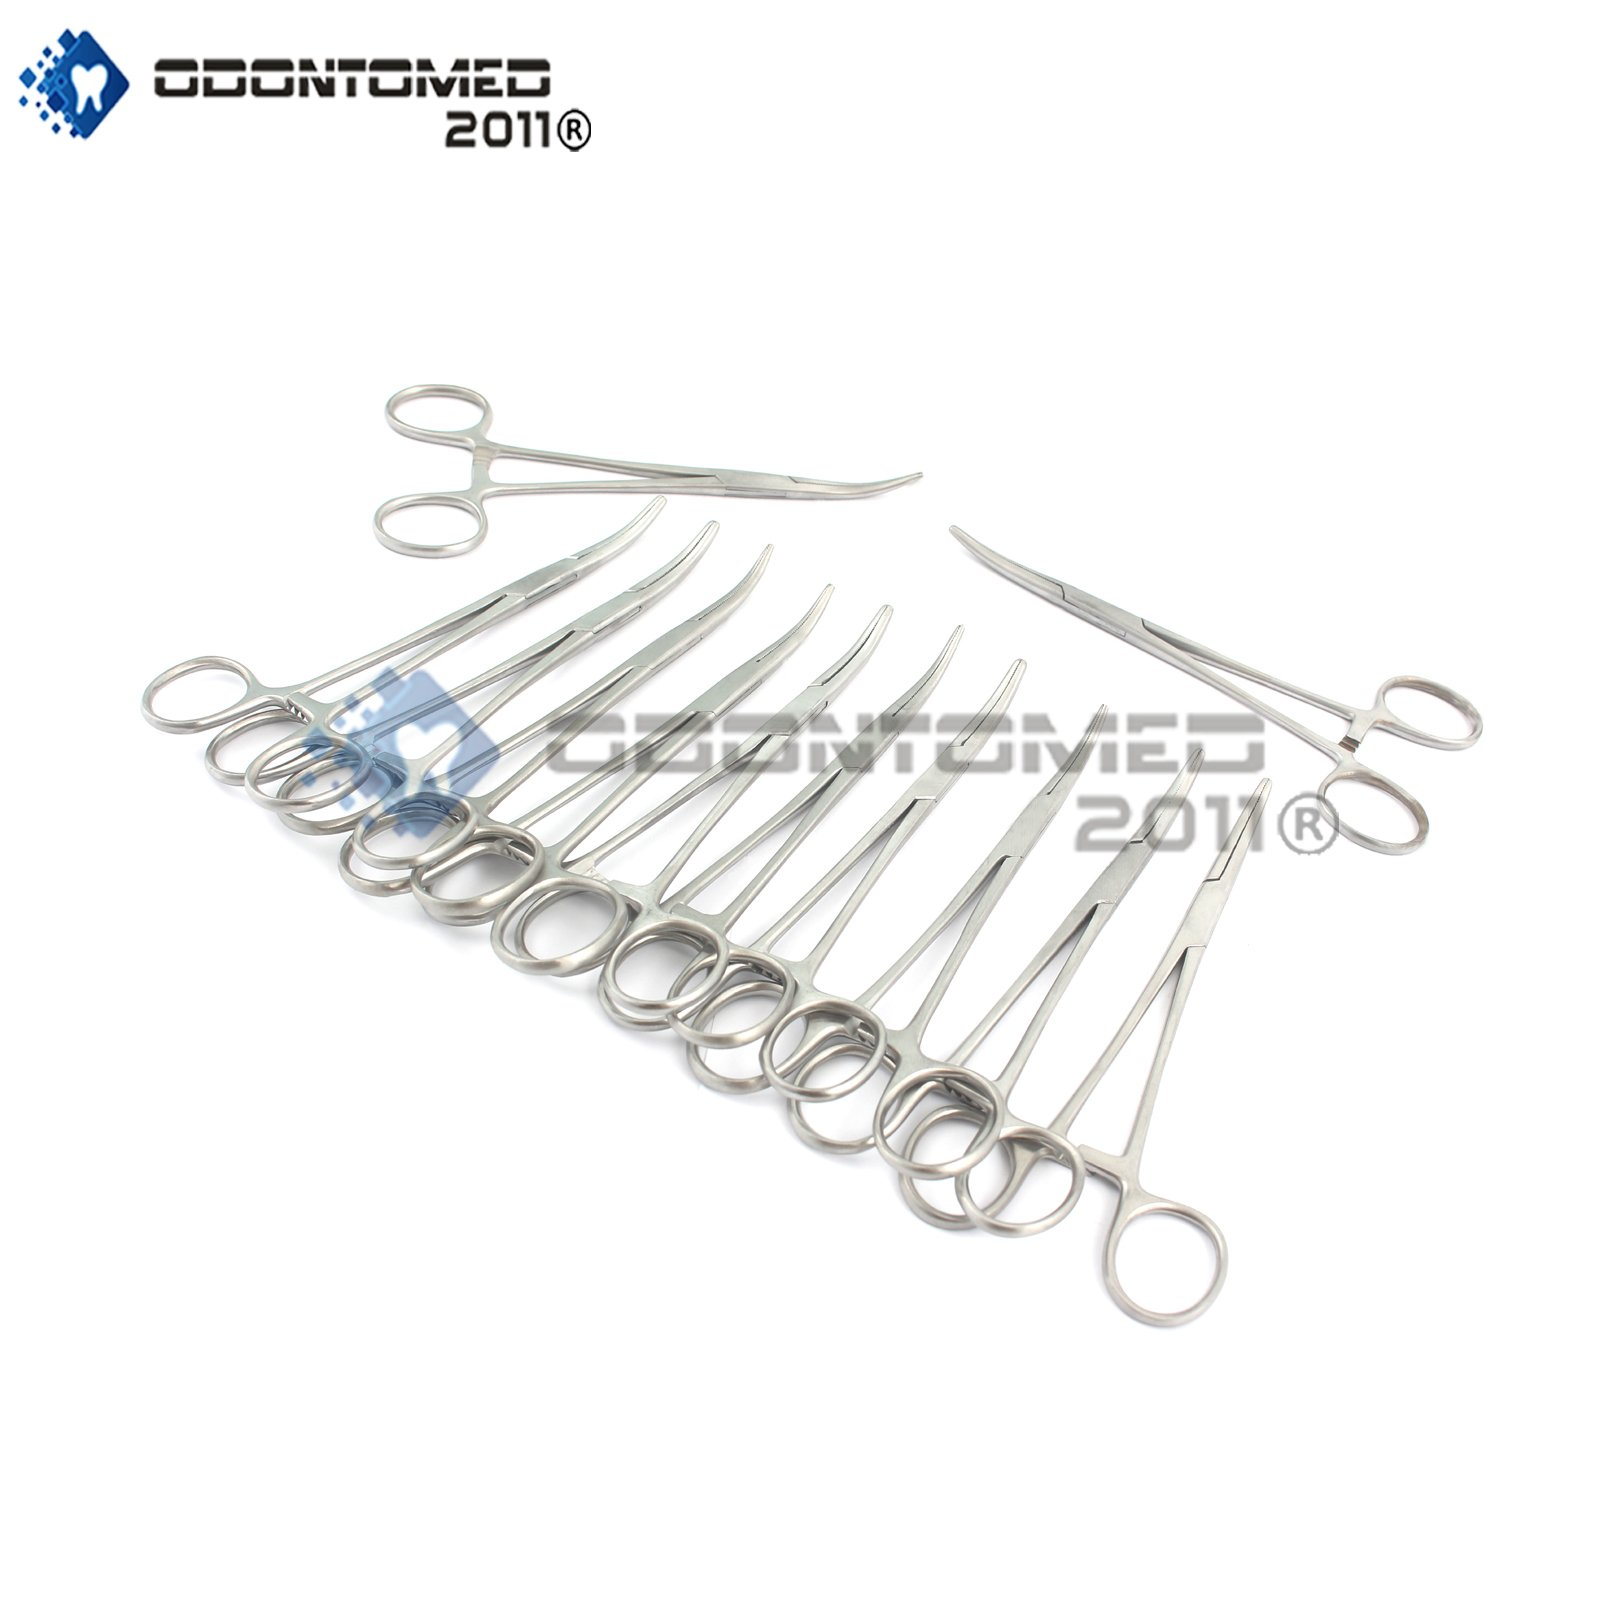 OdontoMed2011® Set of 12 PCS Stainless Steel AUTOCLAVABLE Rankin CRILE HEMOSTAT Forceps Curved 6.25'' Dental Veterinary Instruments ODM